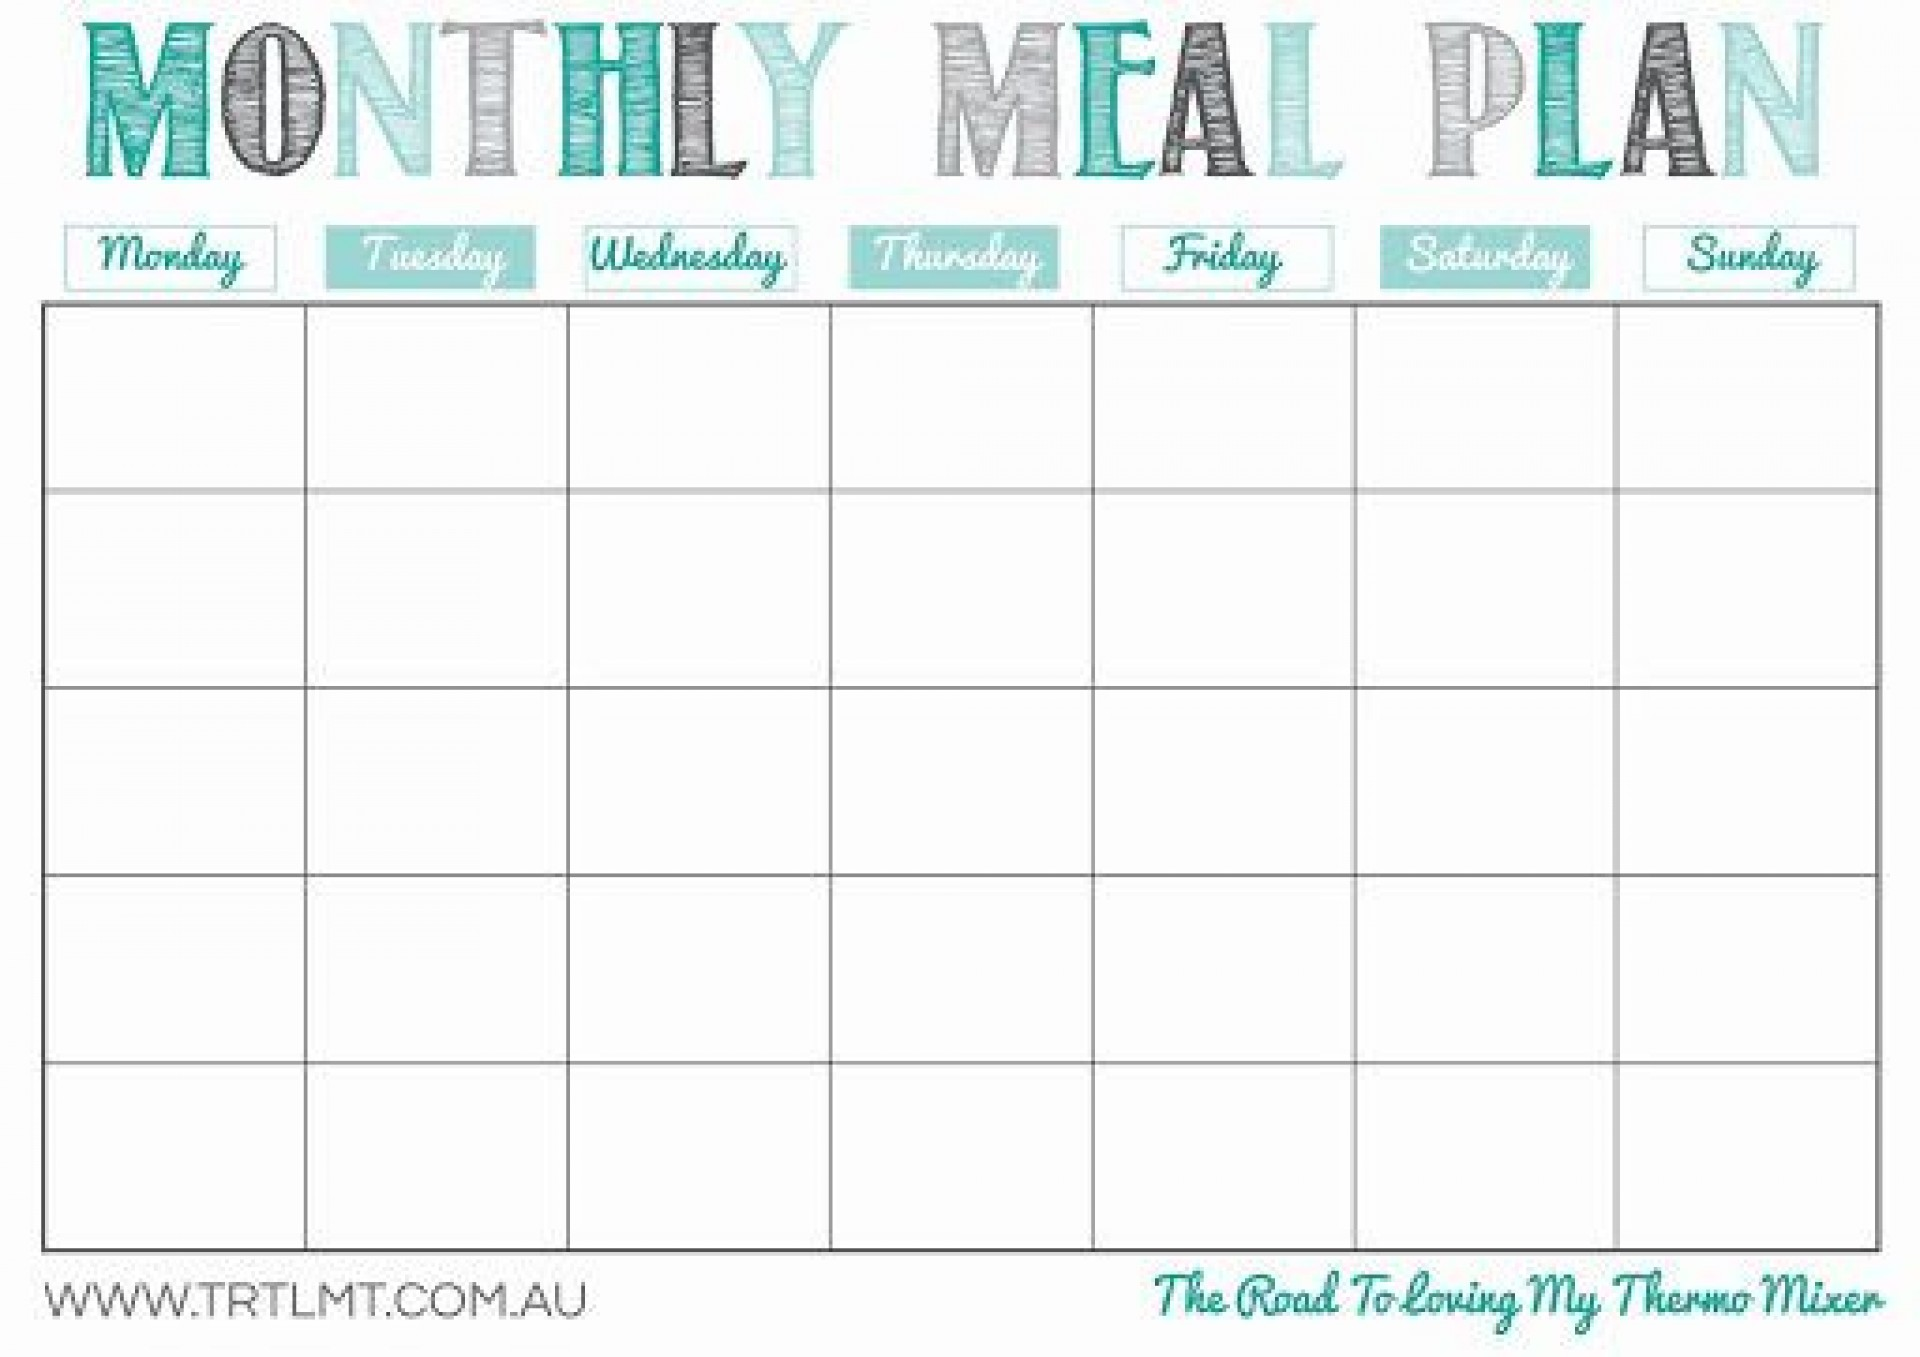 009 Imposing Free Meal Planner Template For Weight Los High Resolution  Loss1920